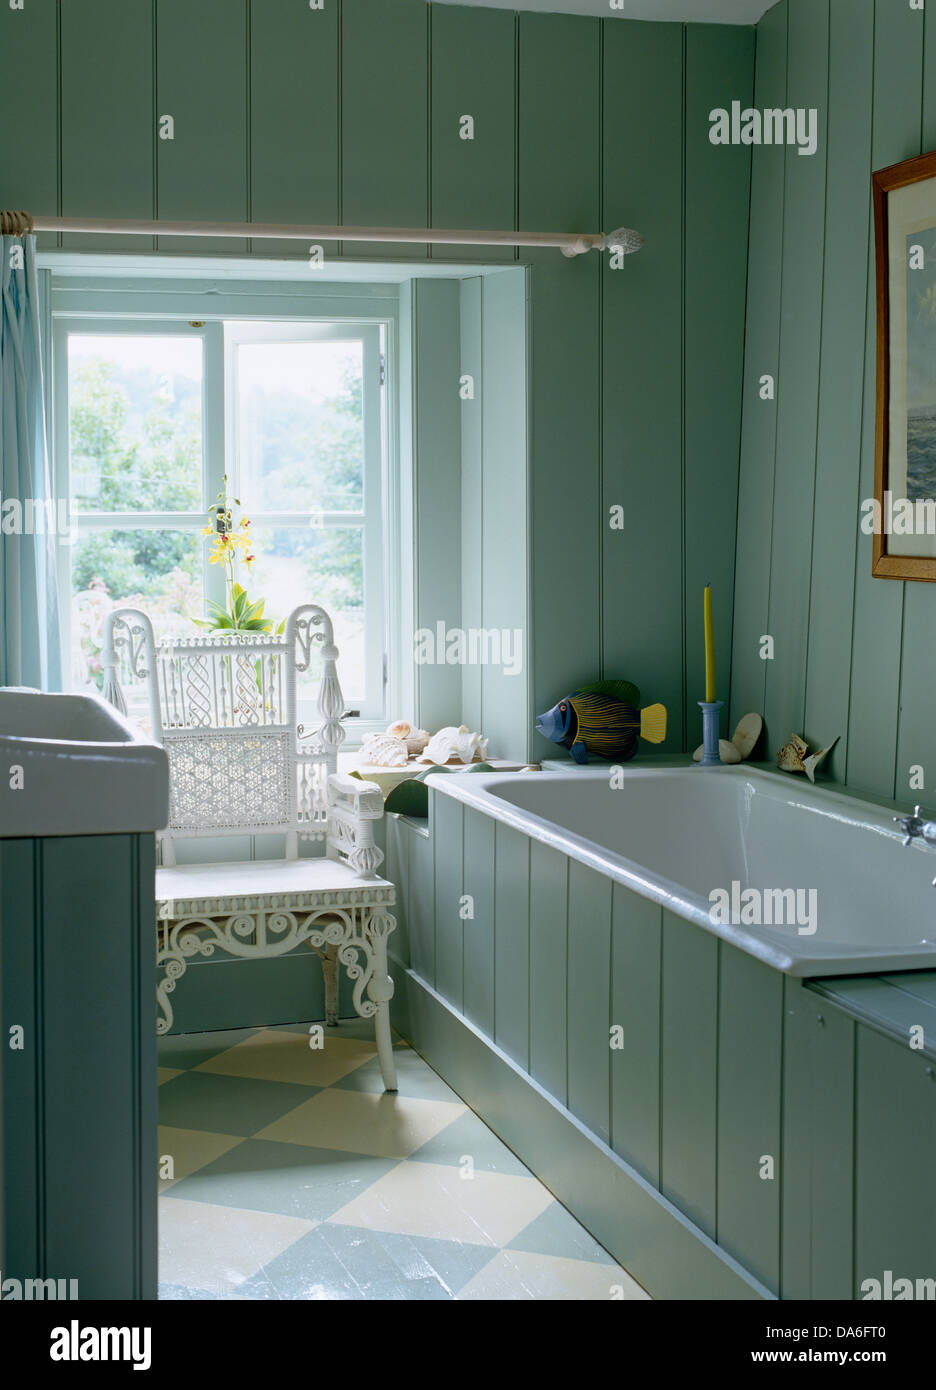 Tongue and groove for bathrooms - Stock Photo White Wicker Chair And Painted Floor In Country Bathroom With Pale Blue Tongue Groove Paneled Walls And White Bathtub